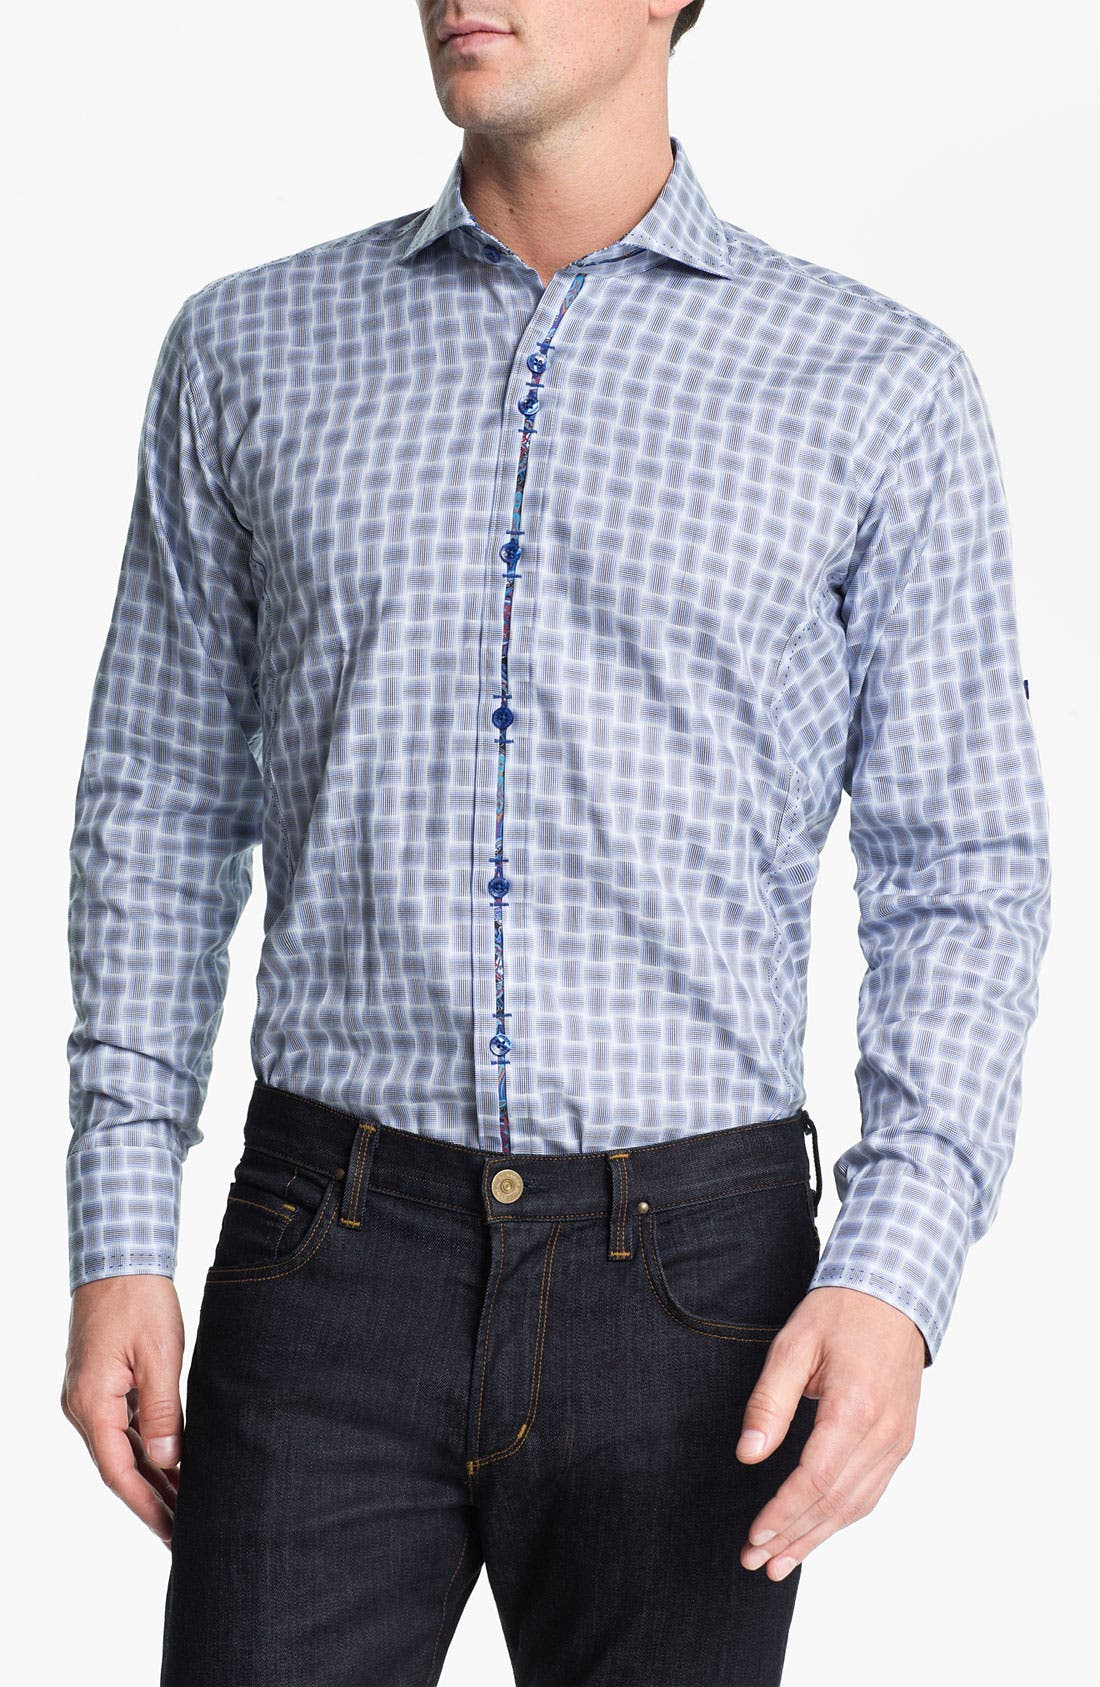 Alternate Image 1 Selected - Bogosse 'G David 83' Trim Fit Sport Shirt